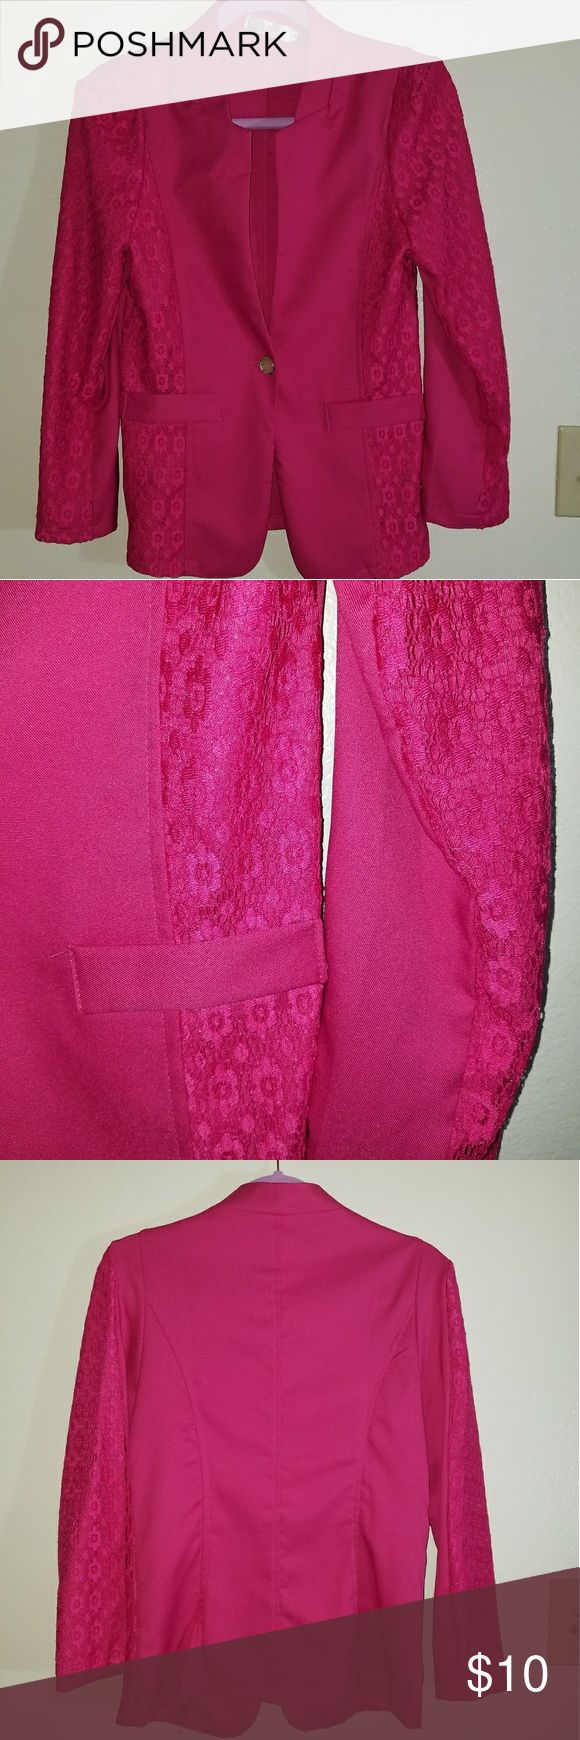 Hot pink blazer Lace embellishment down the sleeves a very flattering v-neck with a jeweled snowflake closure faux pockets on the front Jackets & Coats